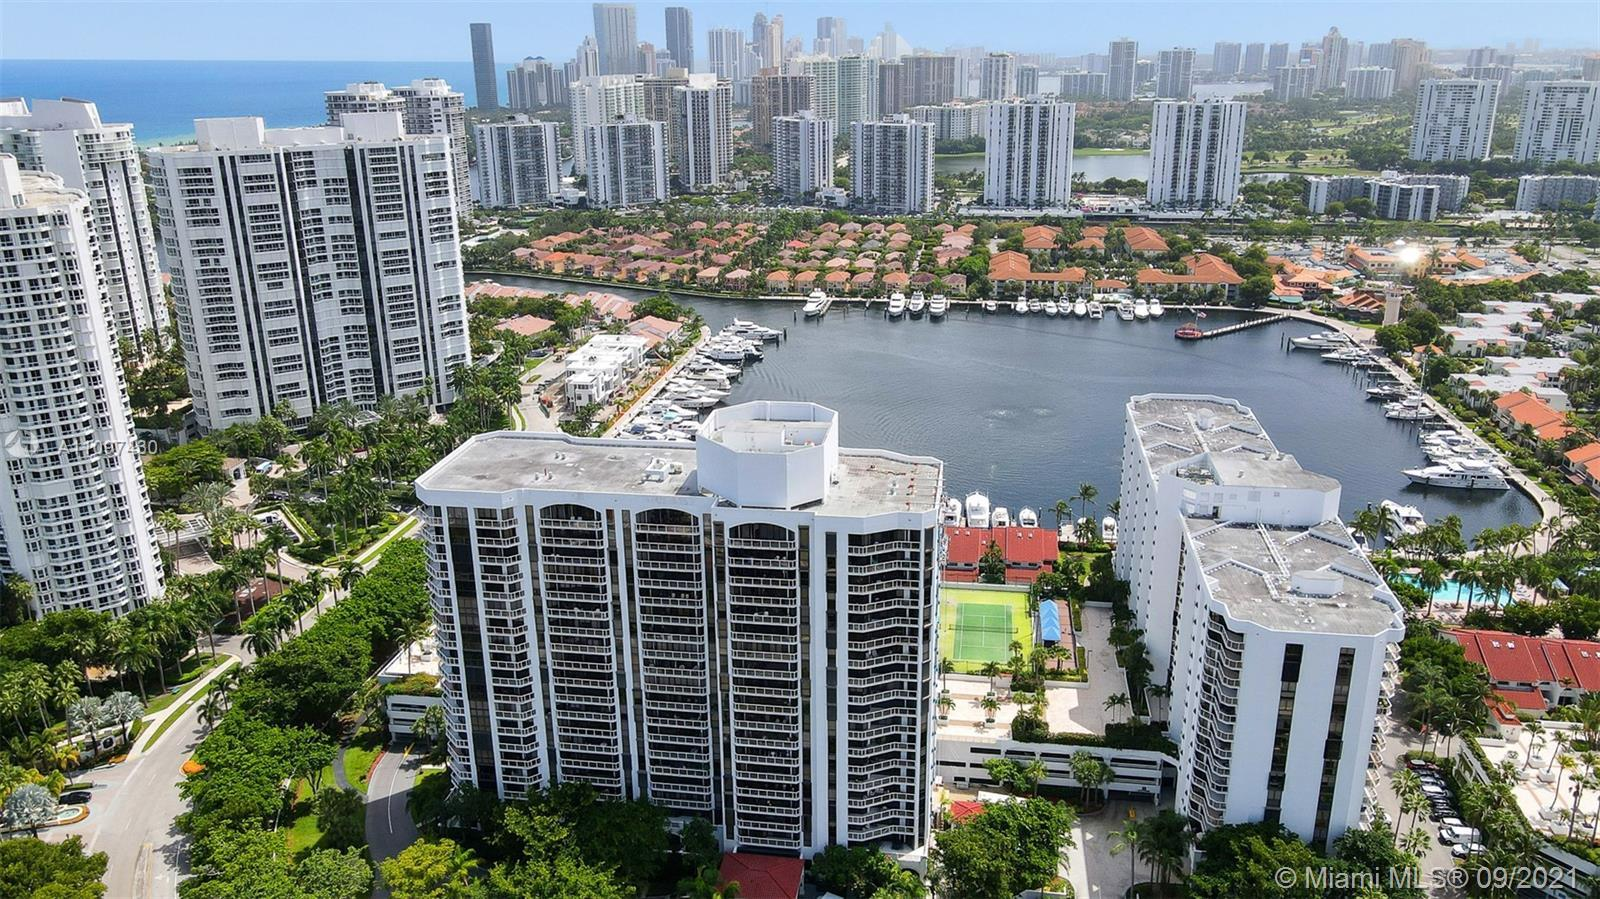 The only and best priced corner unit 3B/2B in Harborside Aventura. This lovely condo comes with 2 pa